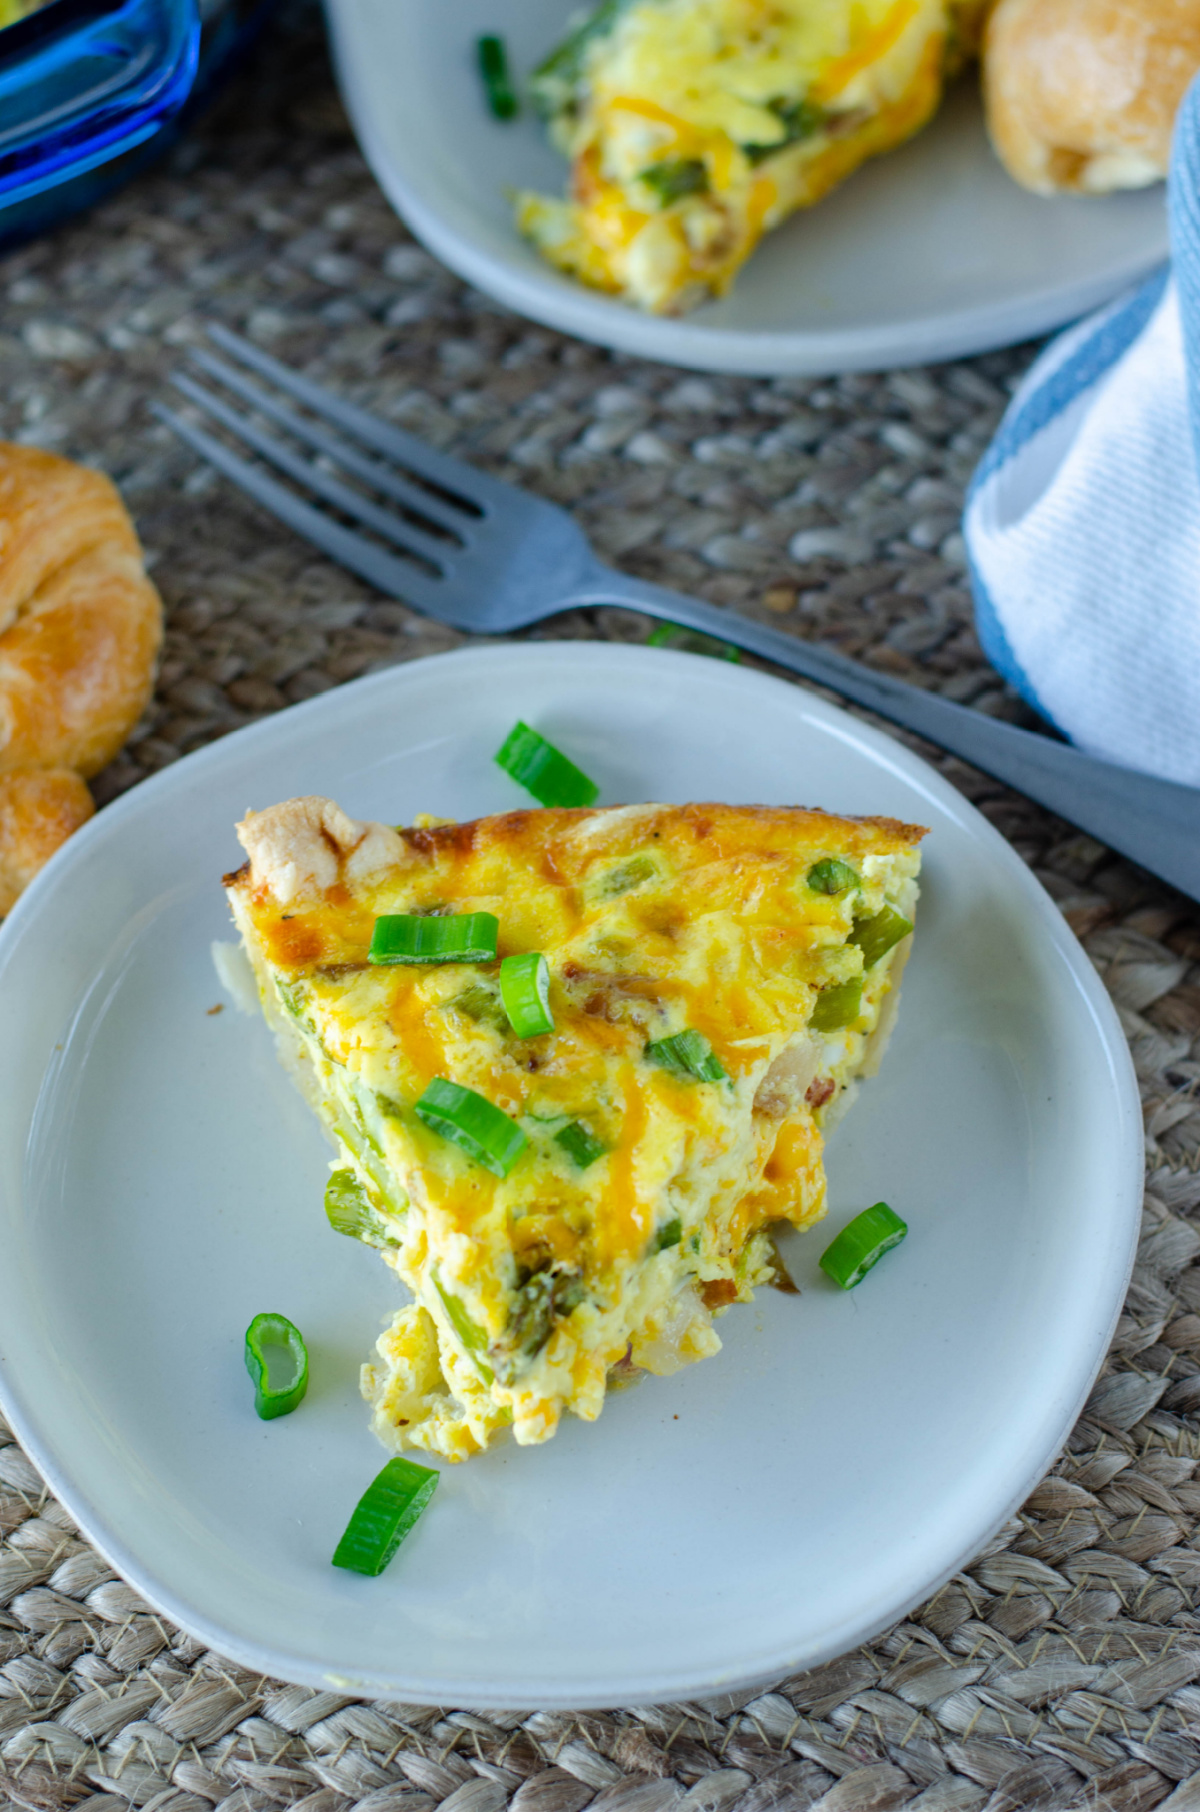 a slice of quiche on a white plate garnished with sliced scallions